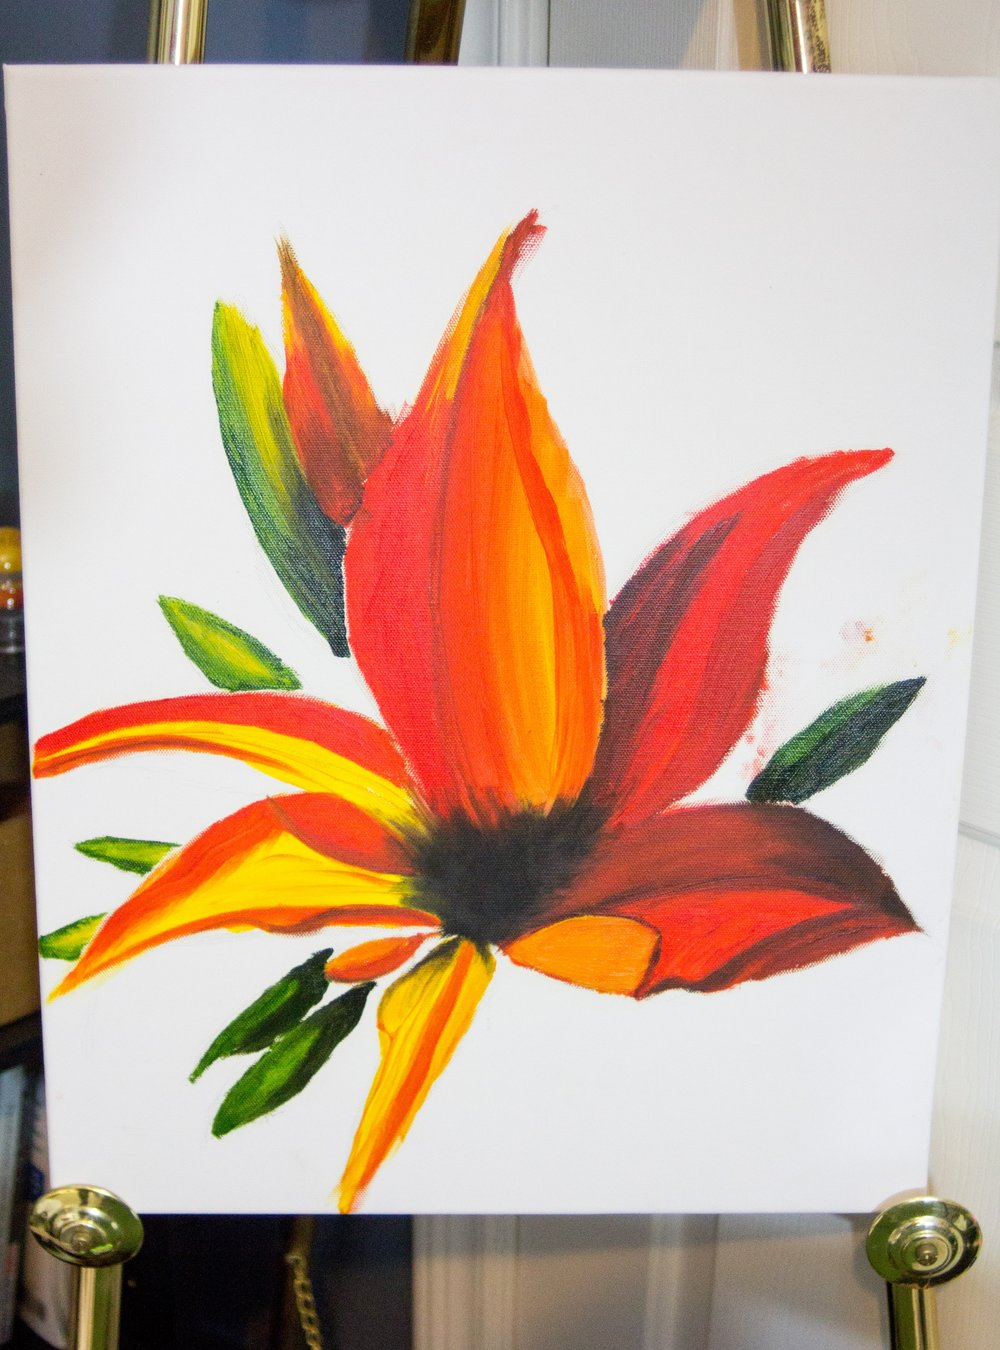 Lily I'm working on for a little while. They are my favorite flower!  Oil on canvas